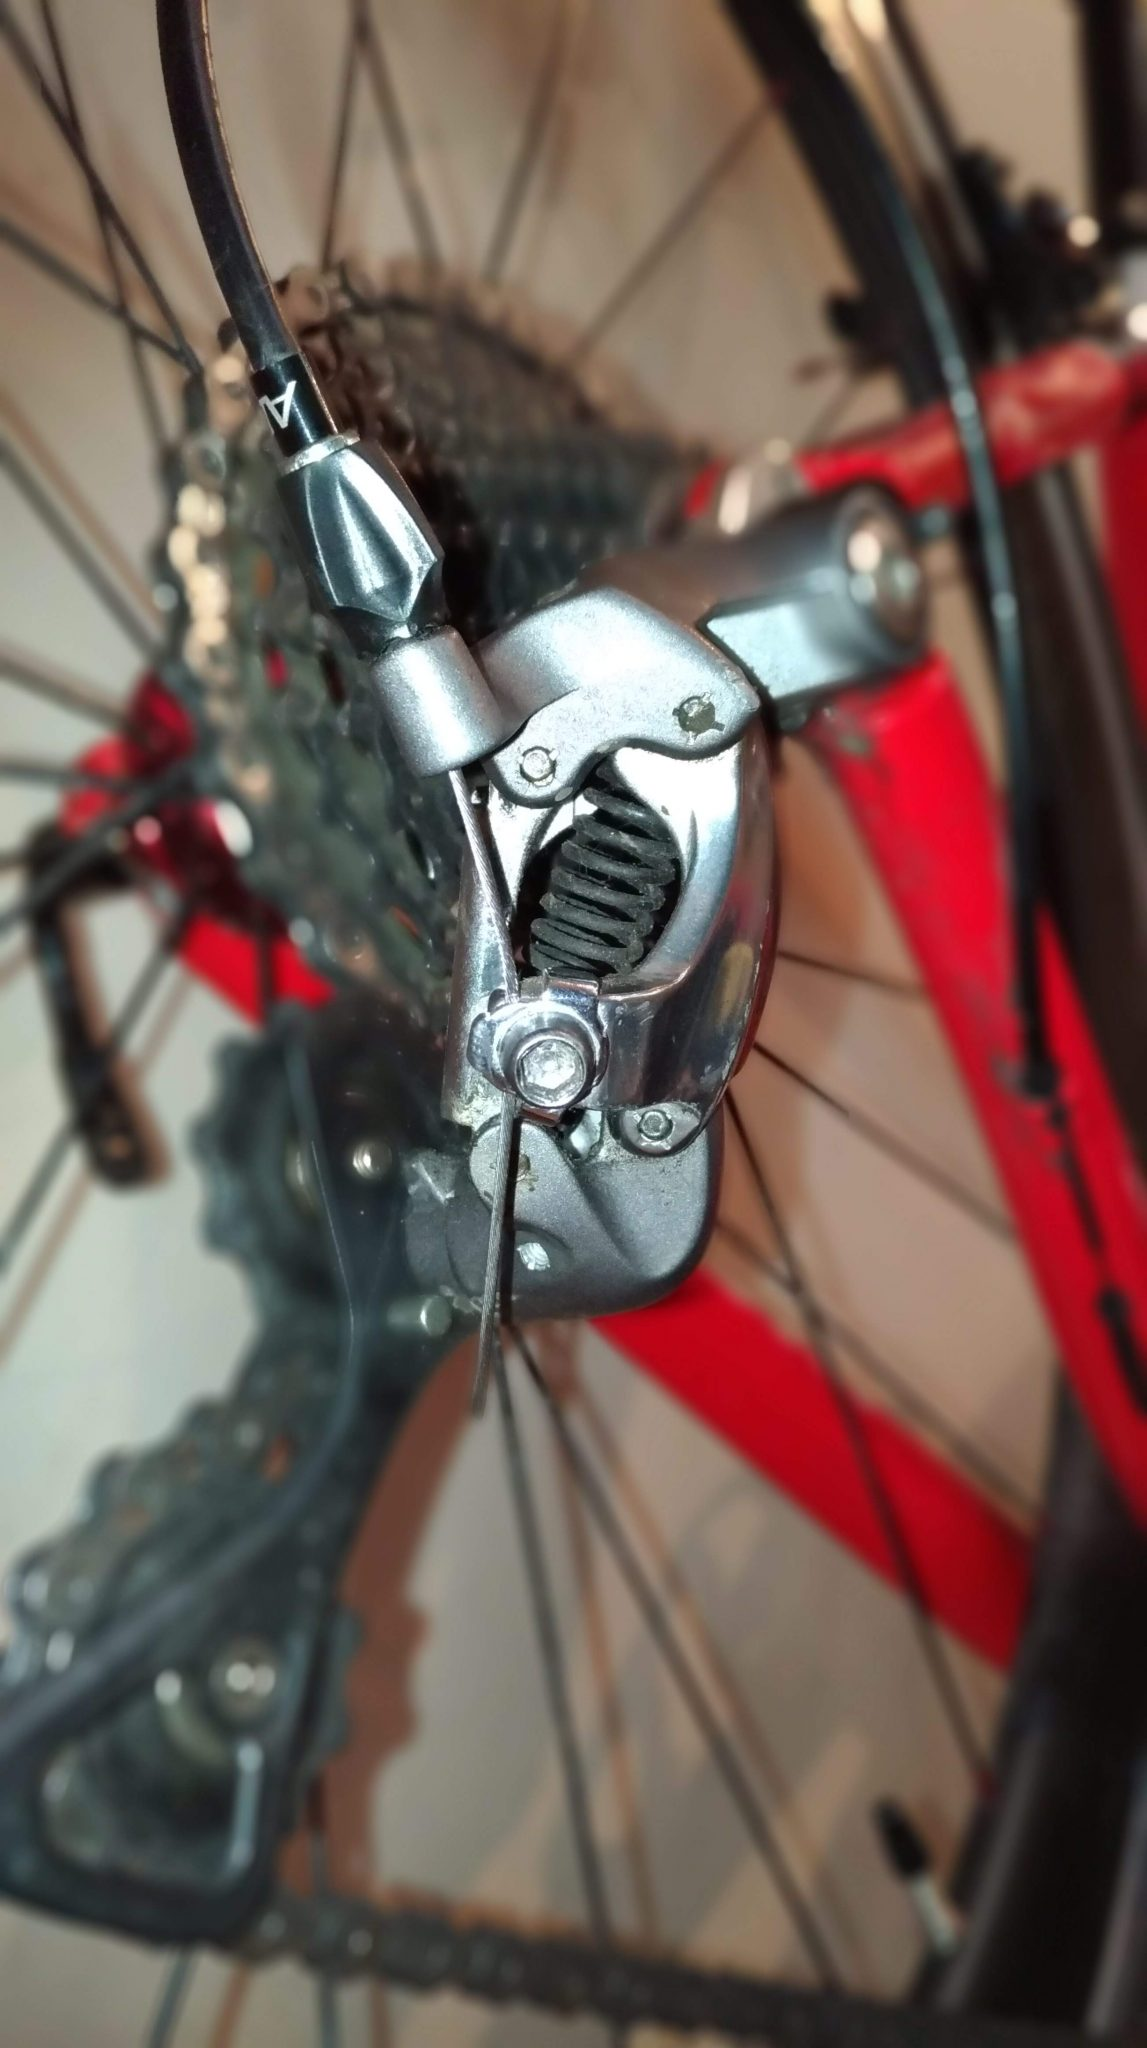 Adjusting Rear Derailleur - Anchor Cable Bolt